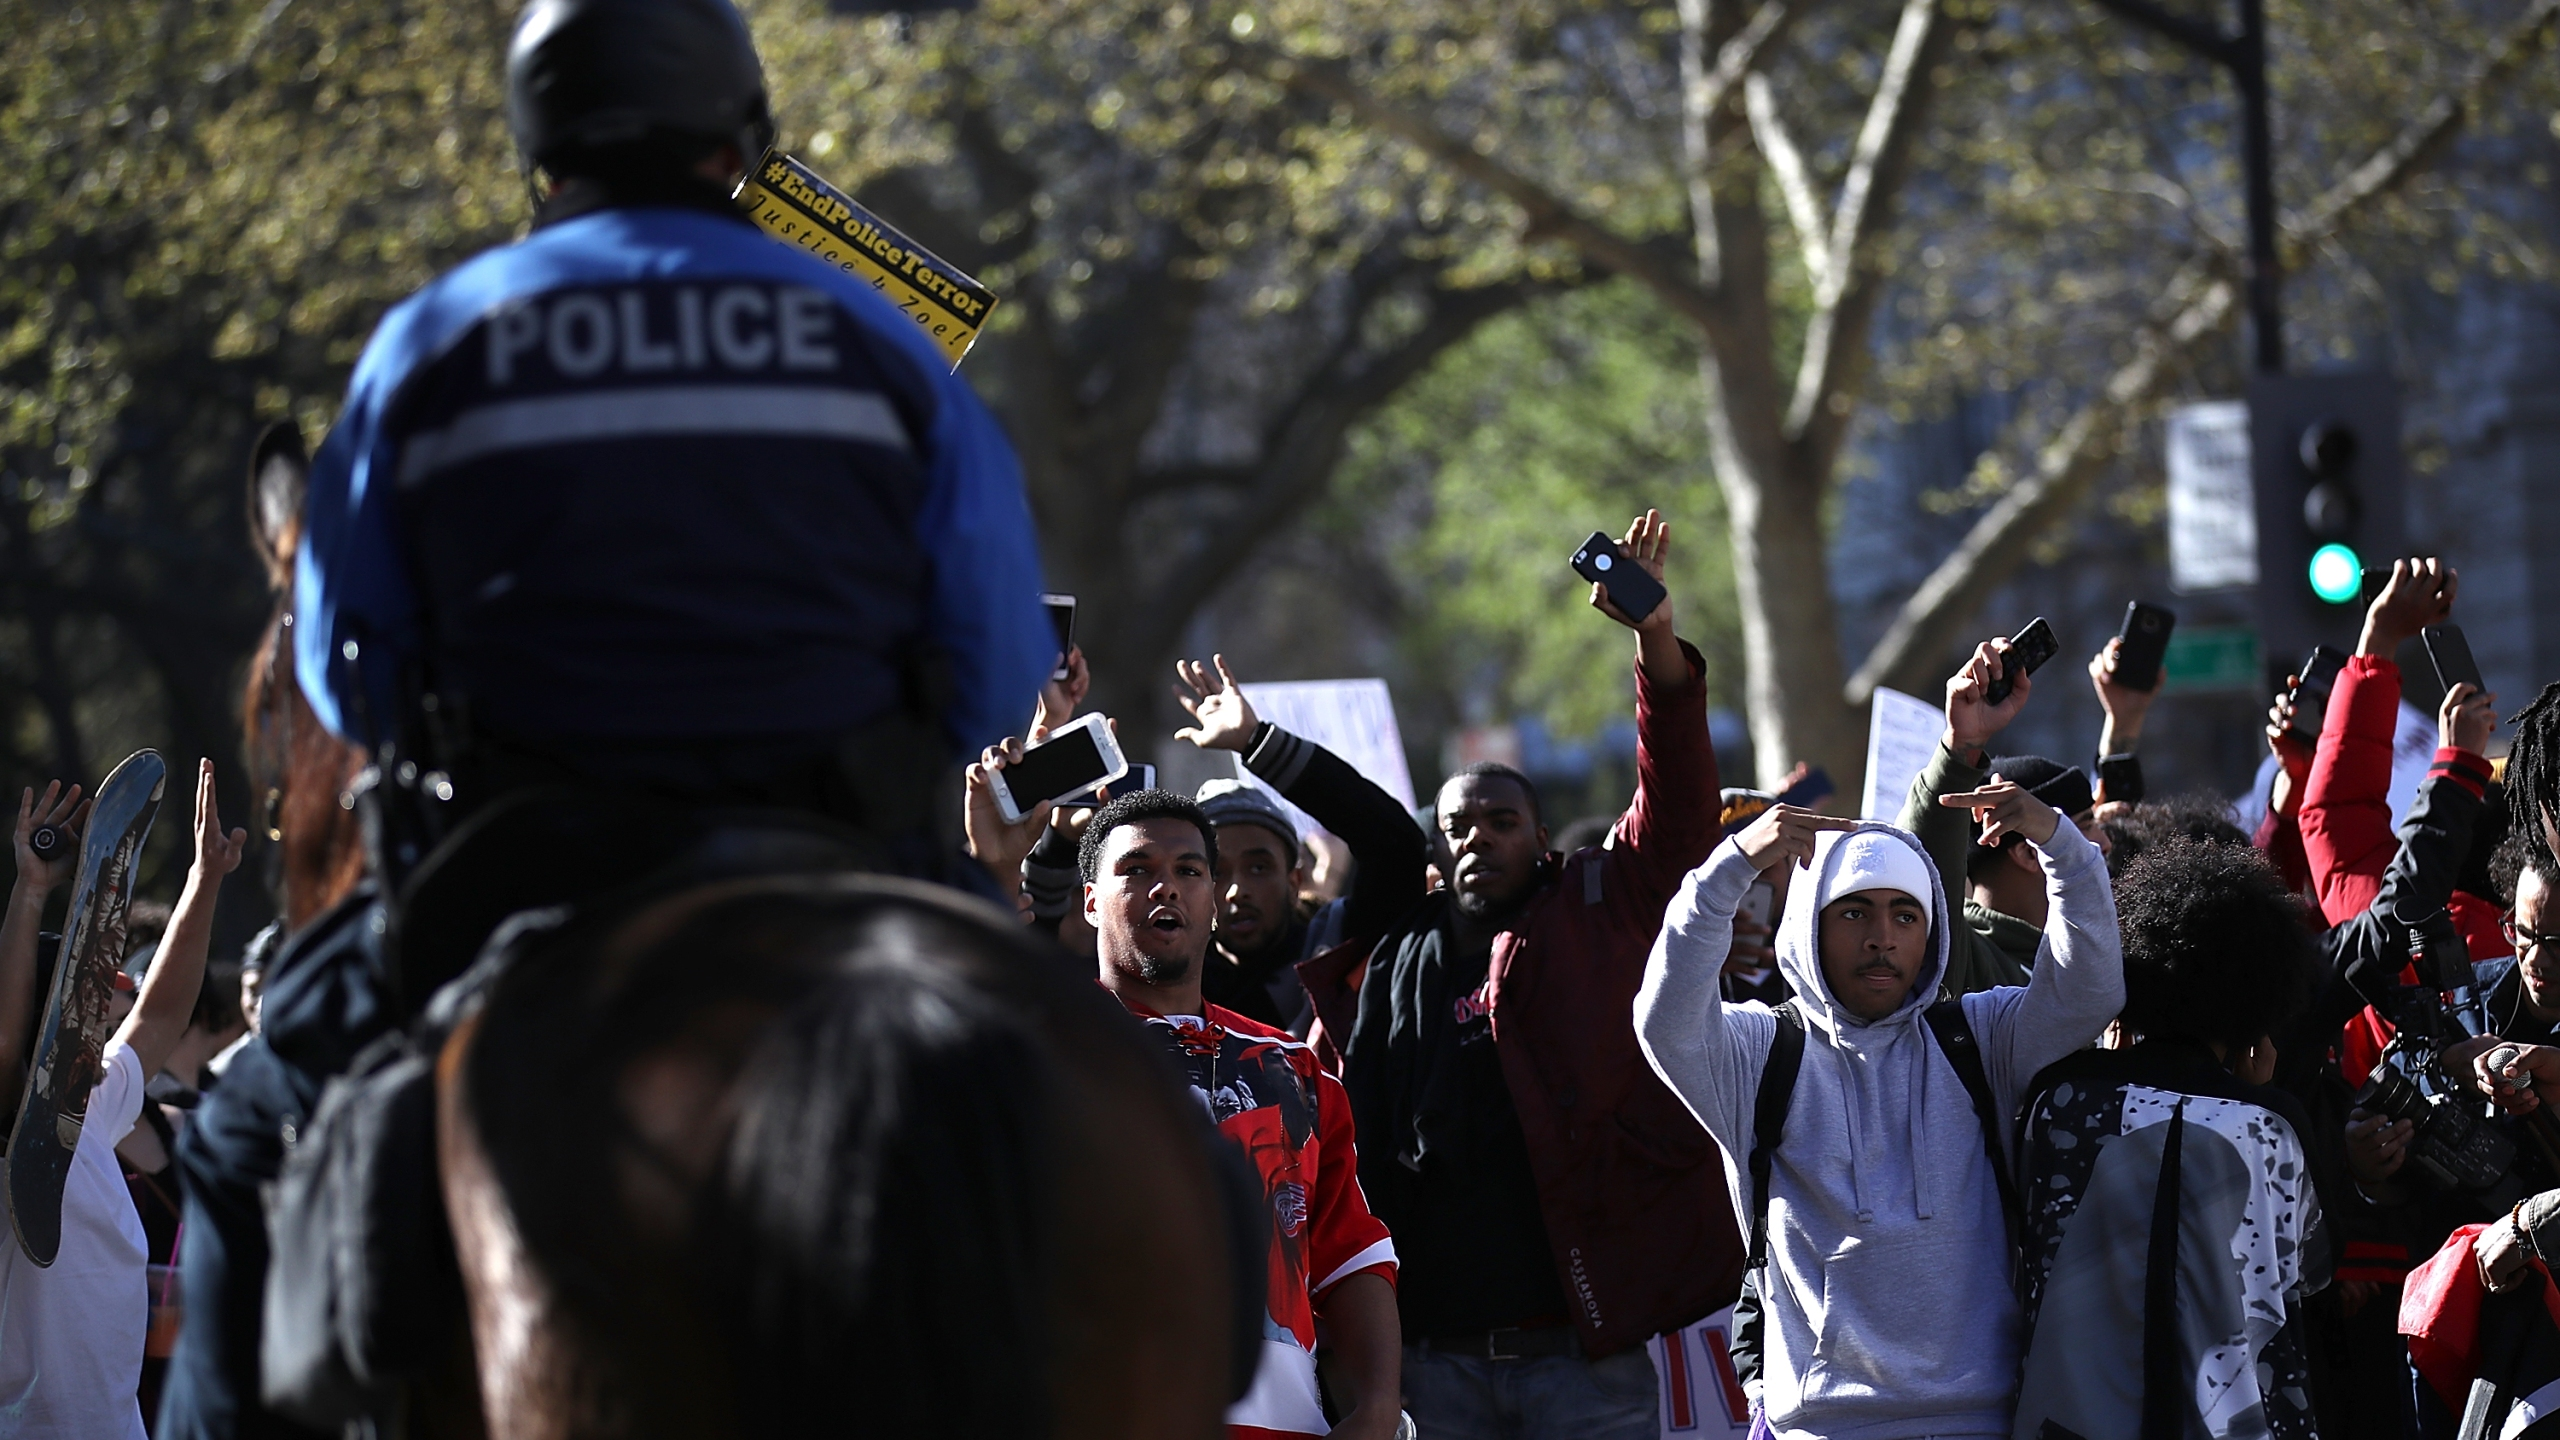 Black Lives Matter protesters gesture towards a Sacramento police officer during a demonstration on March 22, 2018. Hundreds of protesters staged a demonstration after two officers shot and killed Stephon Clark, an unarmed black man, in the backyard of his grandmother's house. (Credit: Justin Sullivan/Getty Images)